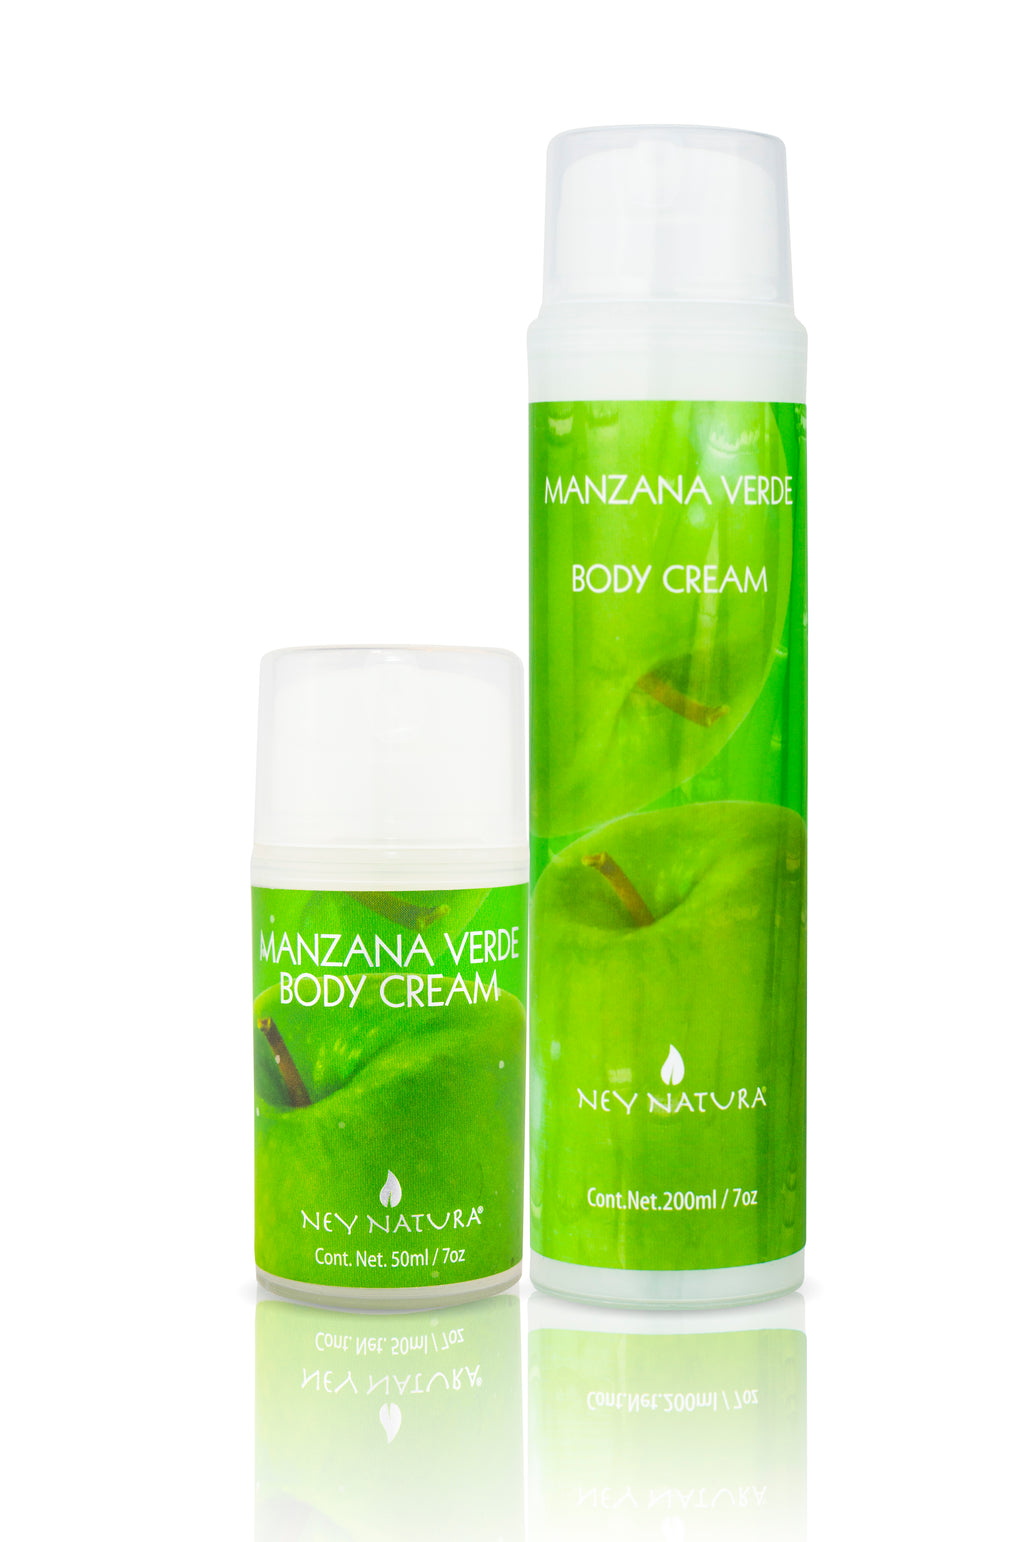 Manzana Verde Body Cream